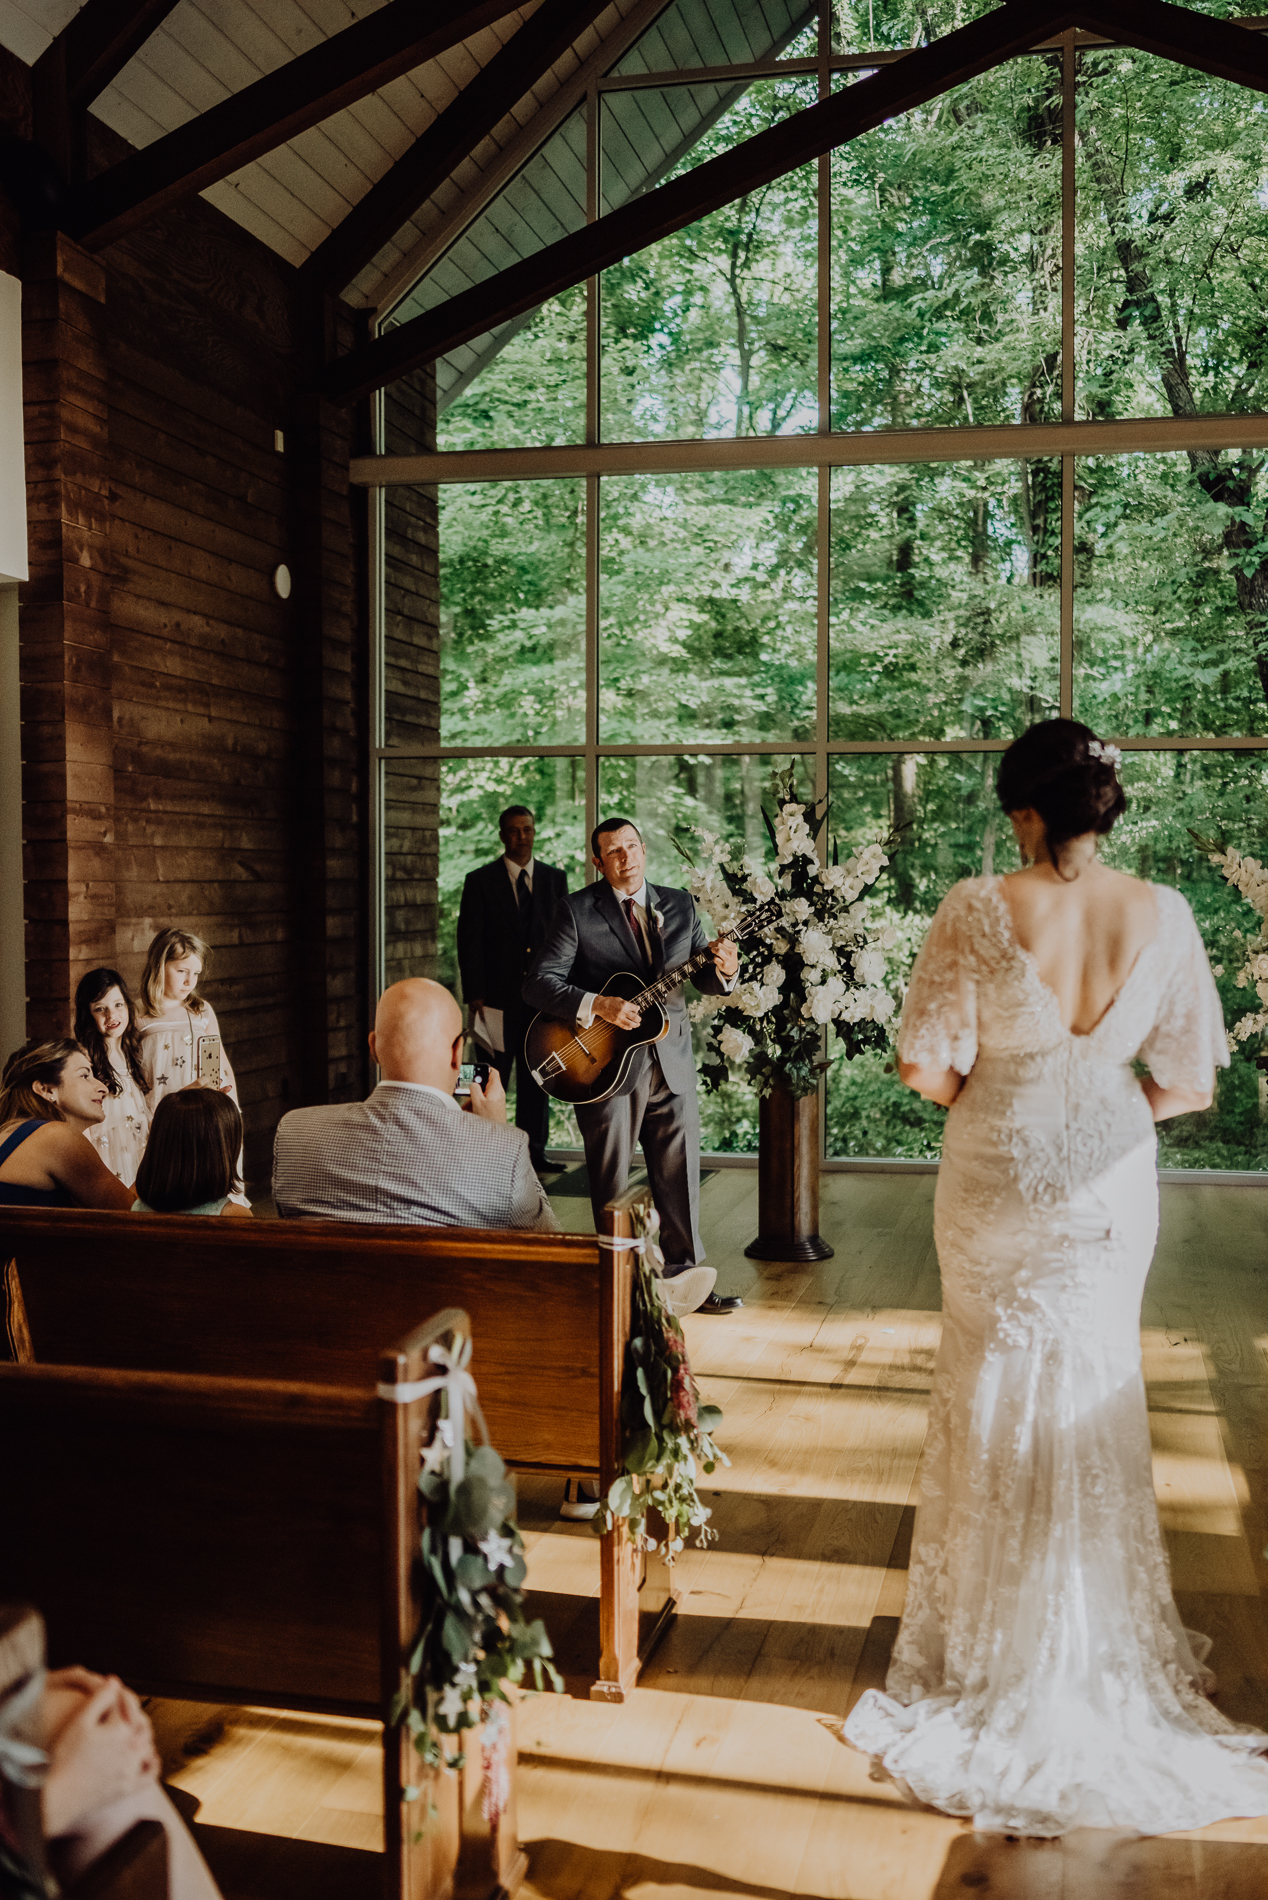 julia and dennis wedding at graceland by wilde company-136.jpg